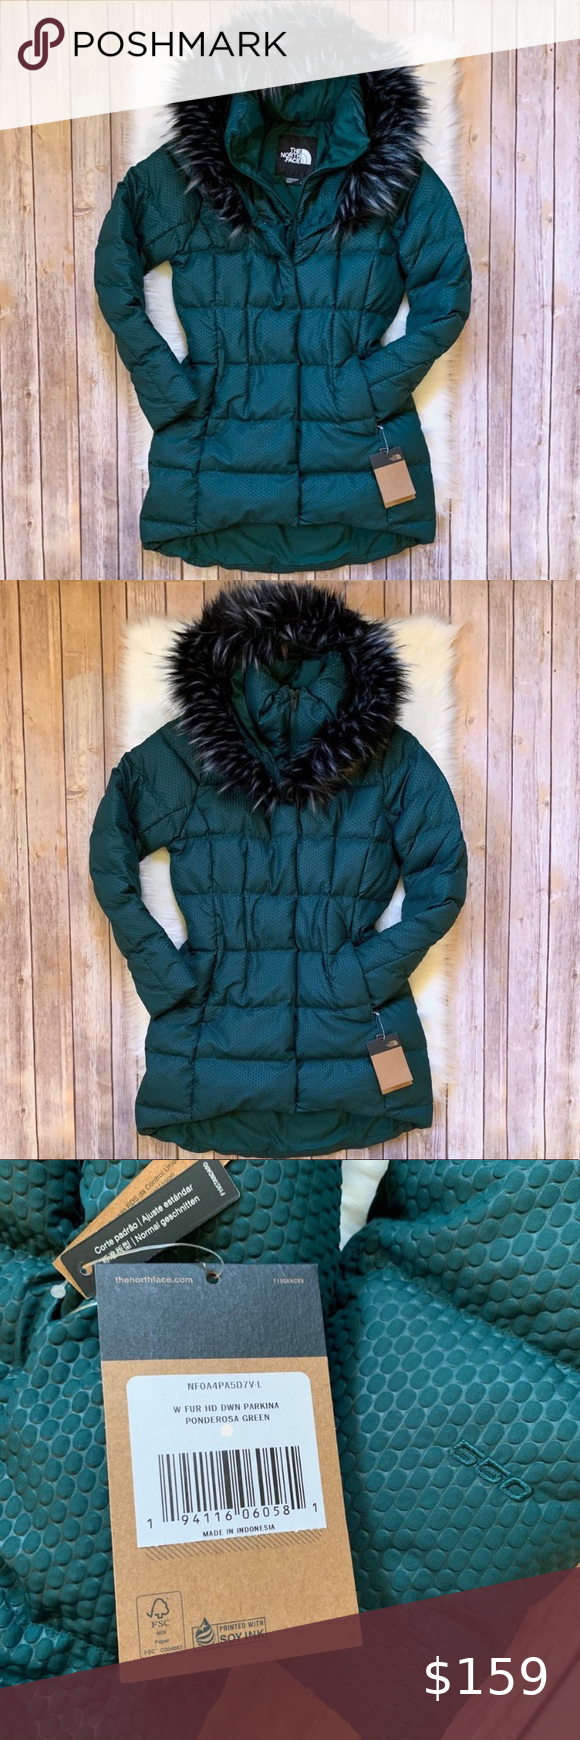 The North Face Fur Hooded Down Parkina Jacket Purple North Face Jacket North Face Winter Coat Clothes Design [ 1740 x 580 Pixel ]